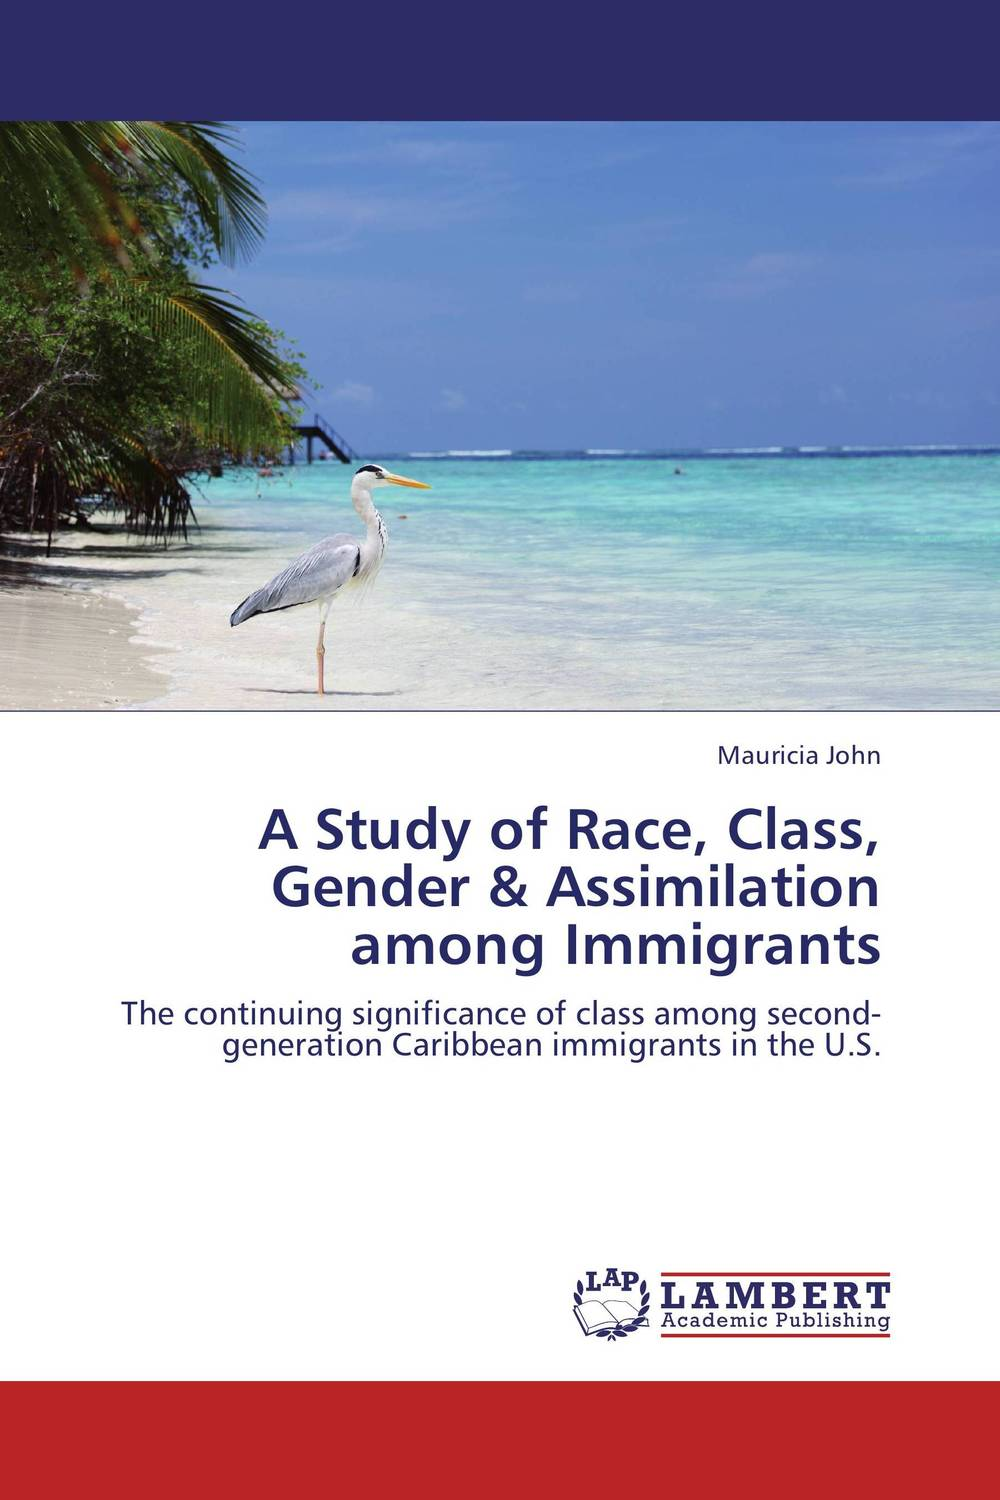 A Study of Race, Class, Gender & Assimilation among Immigrants driven to distraction